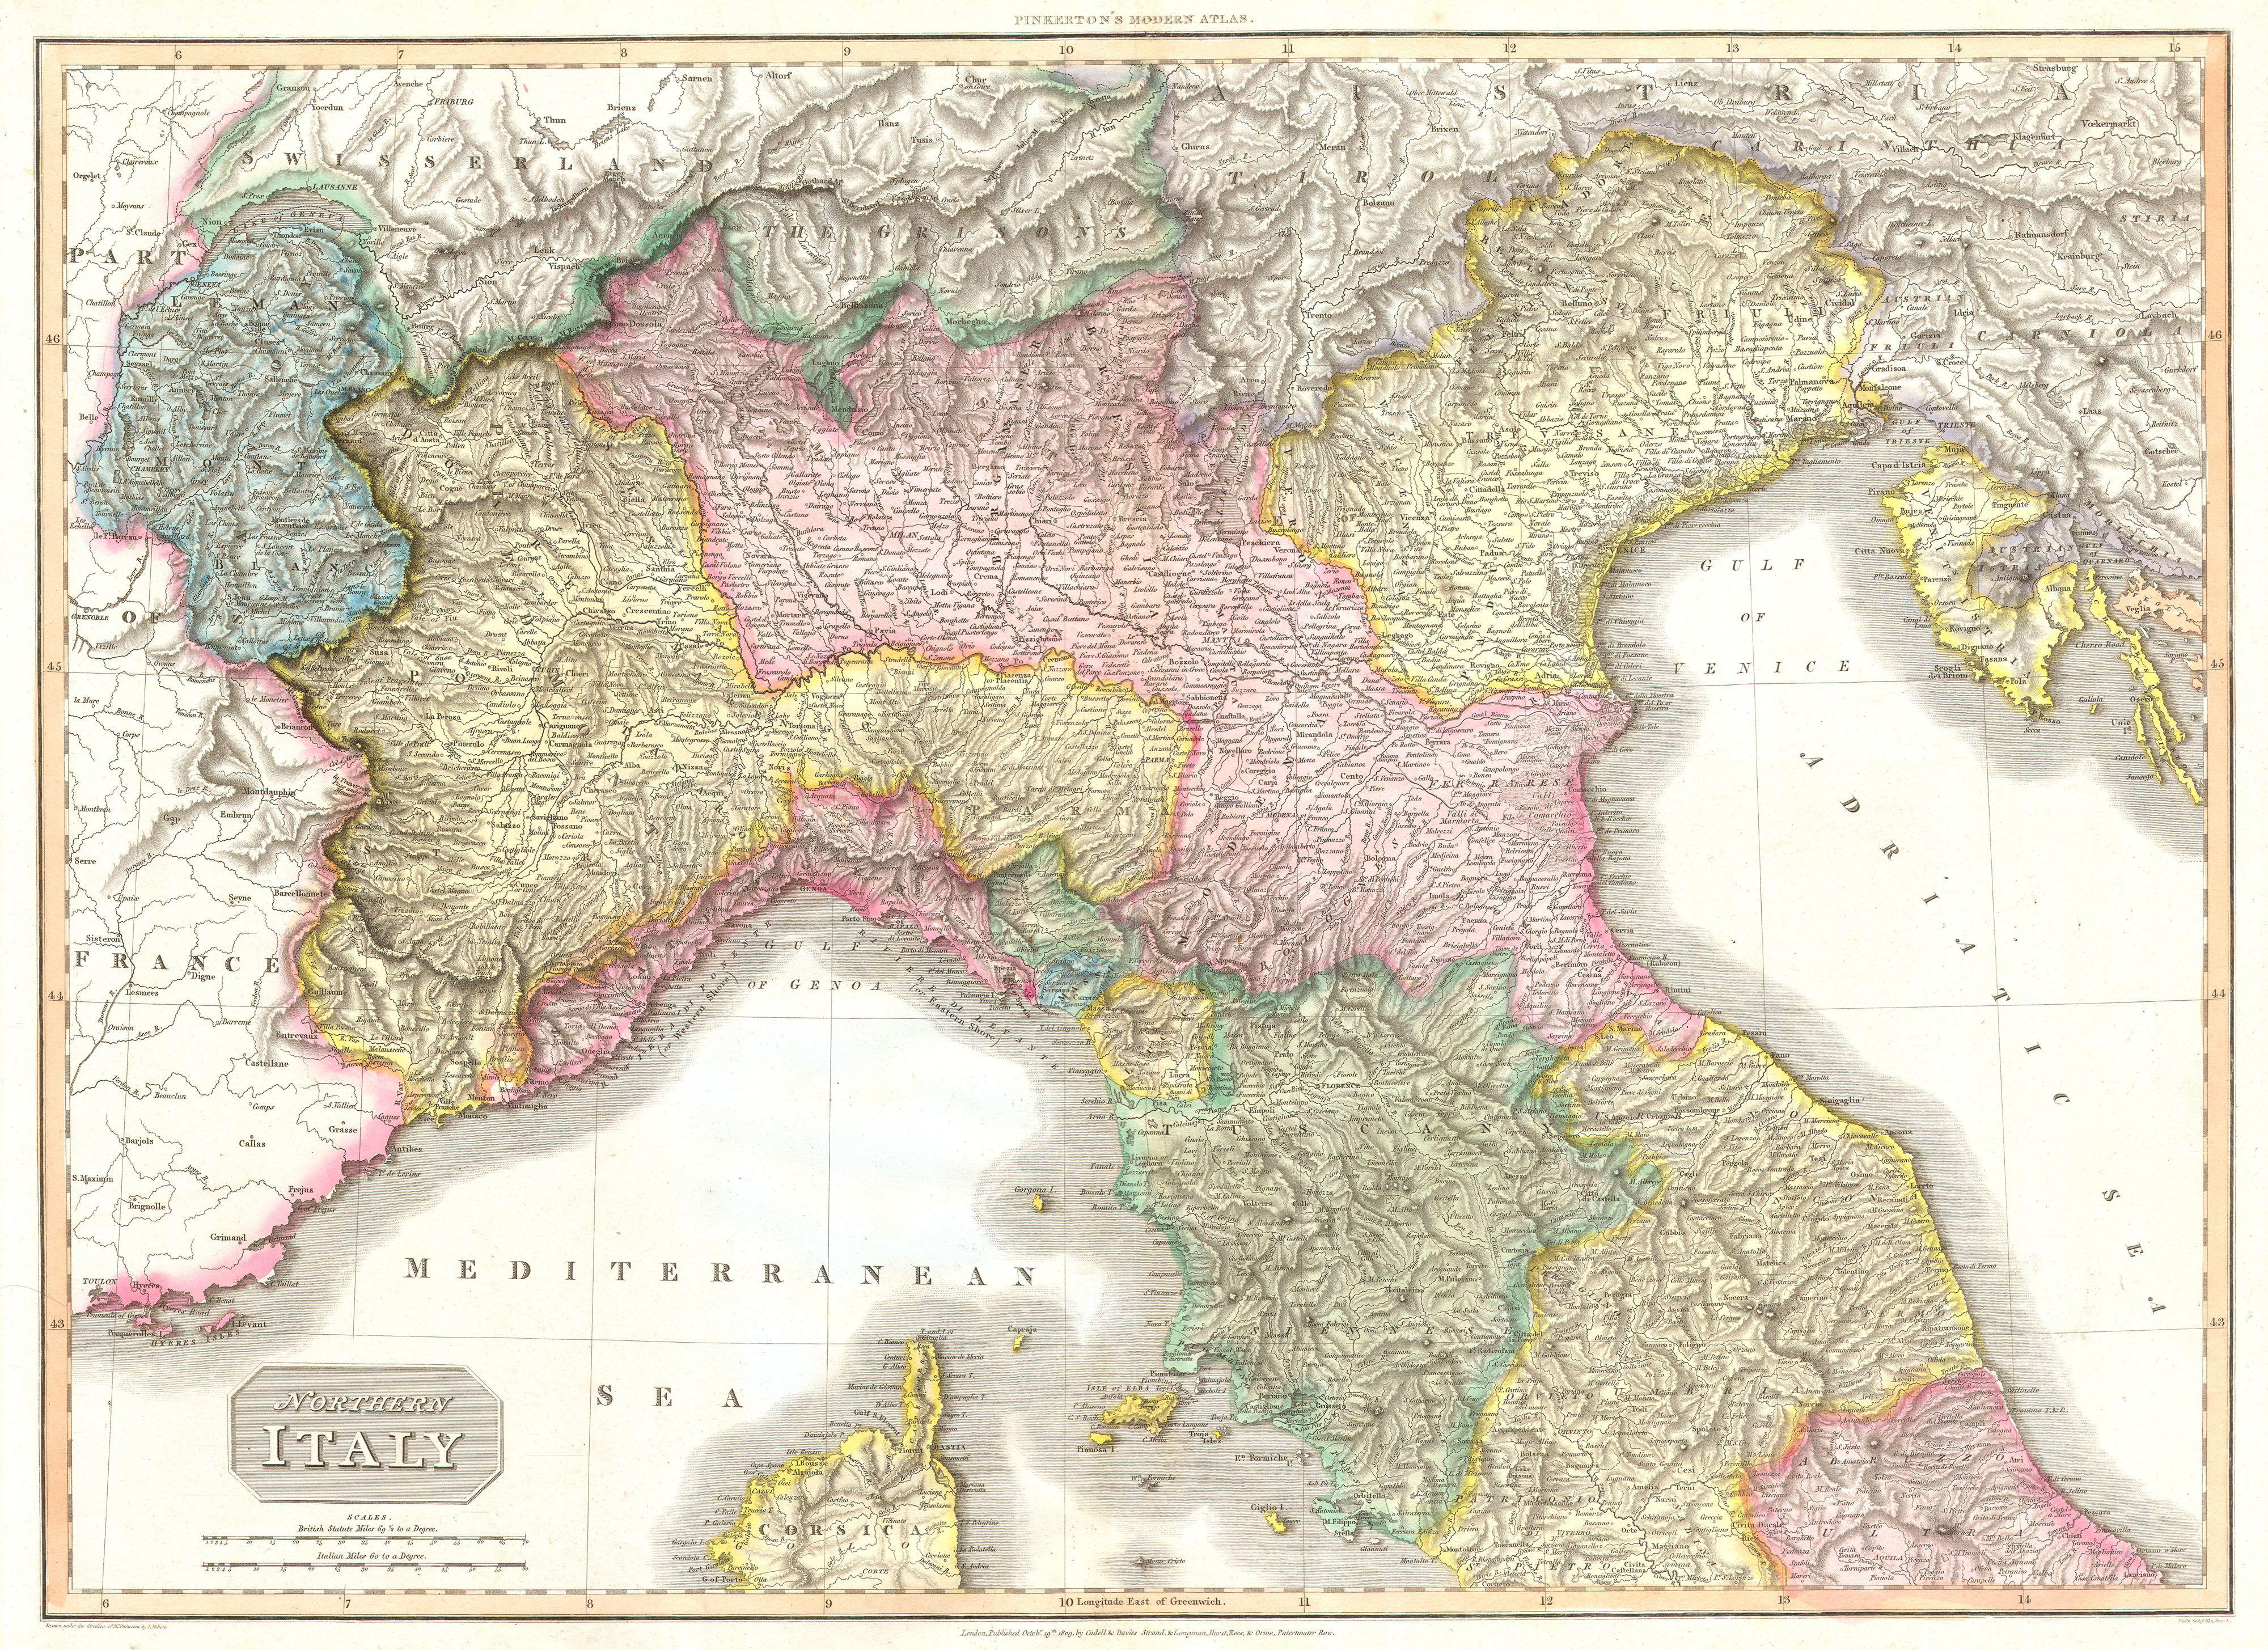 Map Of Northern Italy File:1809 Pinkerton Map of Northern Italy ( Tuscany, Florence  Map Of Northern Italy